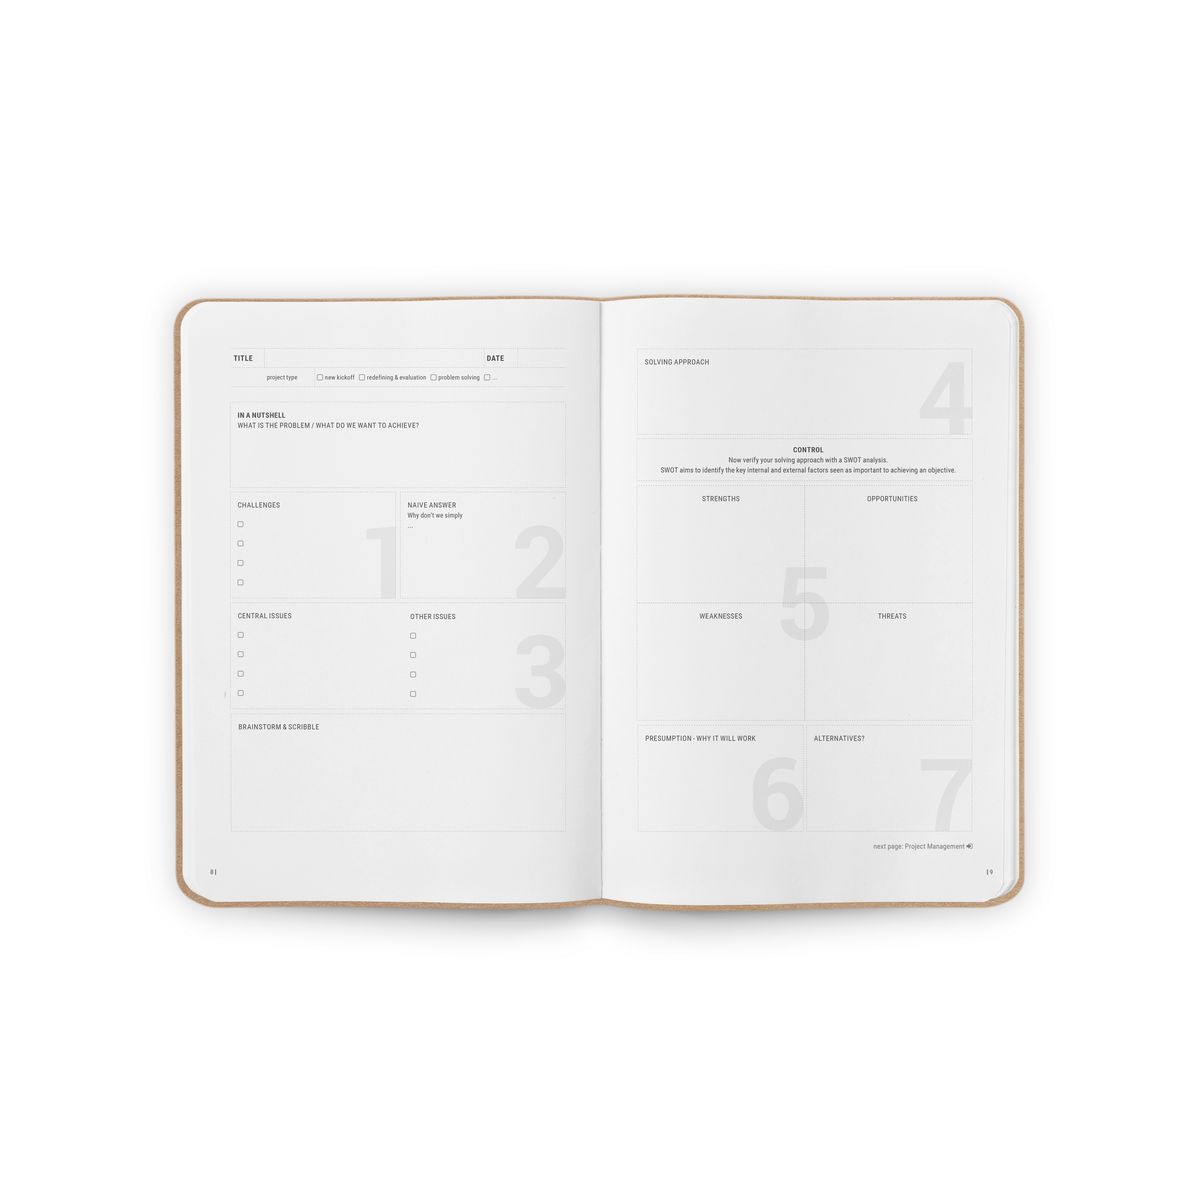 B-118_Projectmanagement_Stationery_Notebook_Spread1